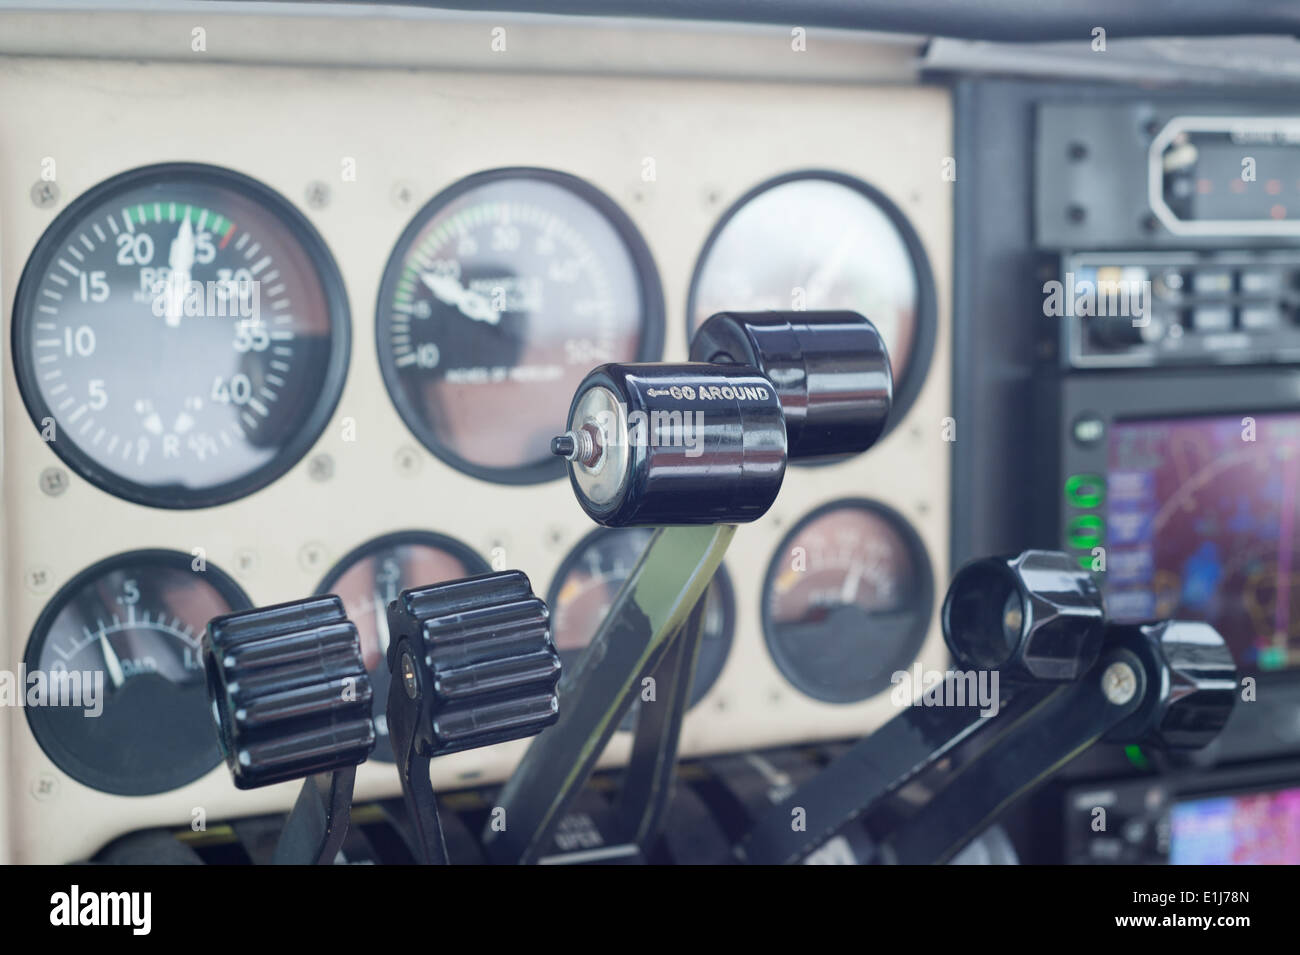 Private Aircraft Instrument Panel and Throttles - all brand names removed - Stock Image